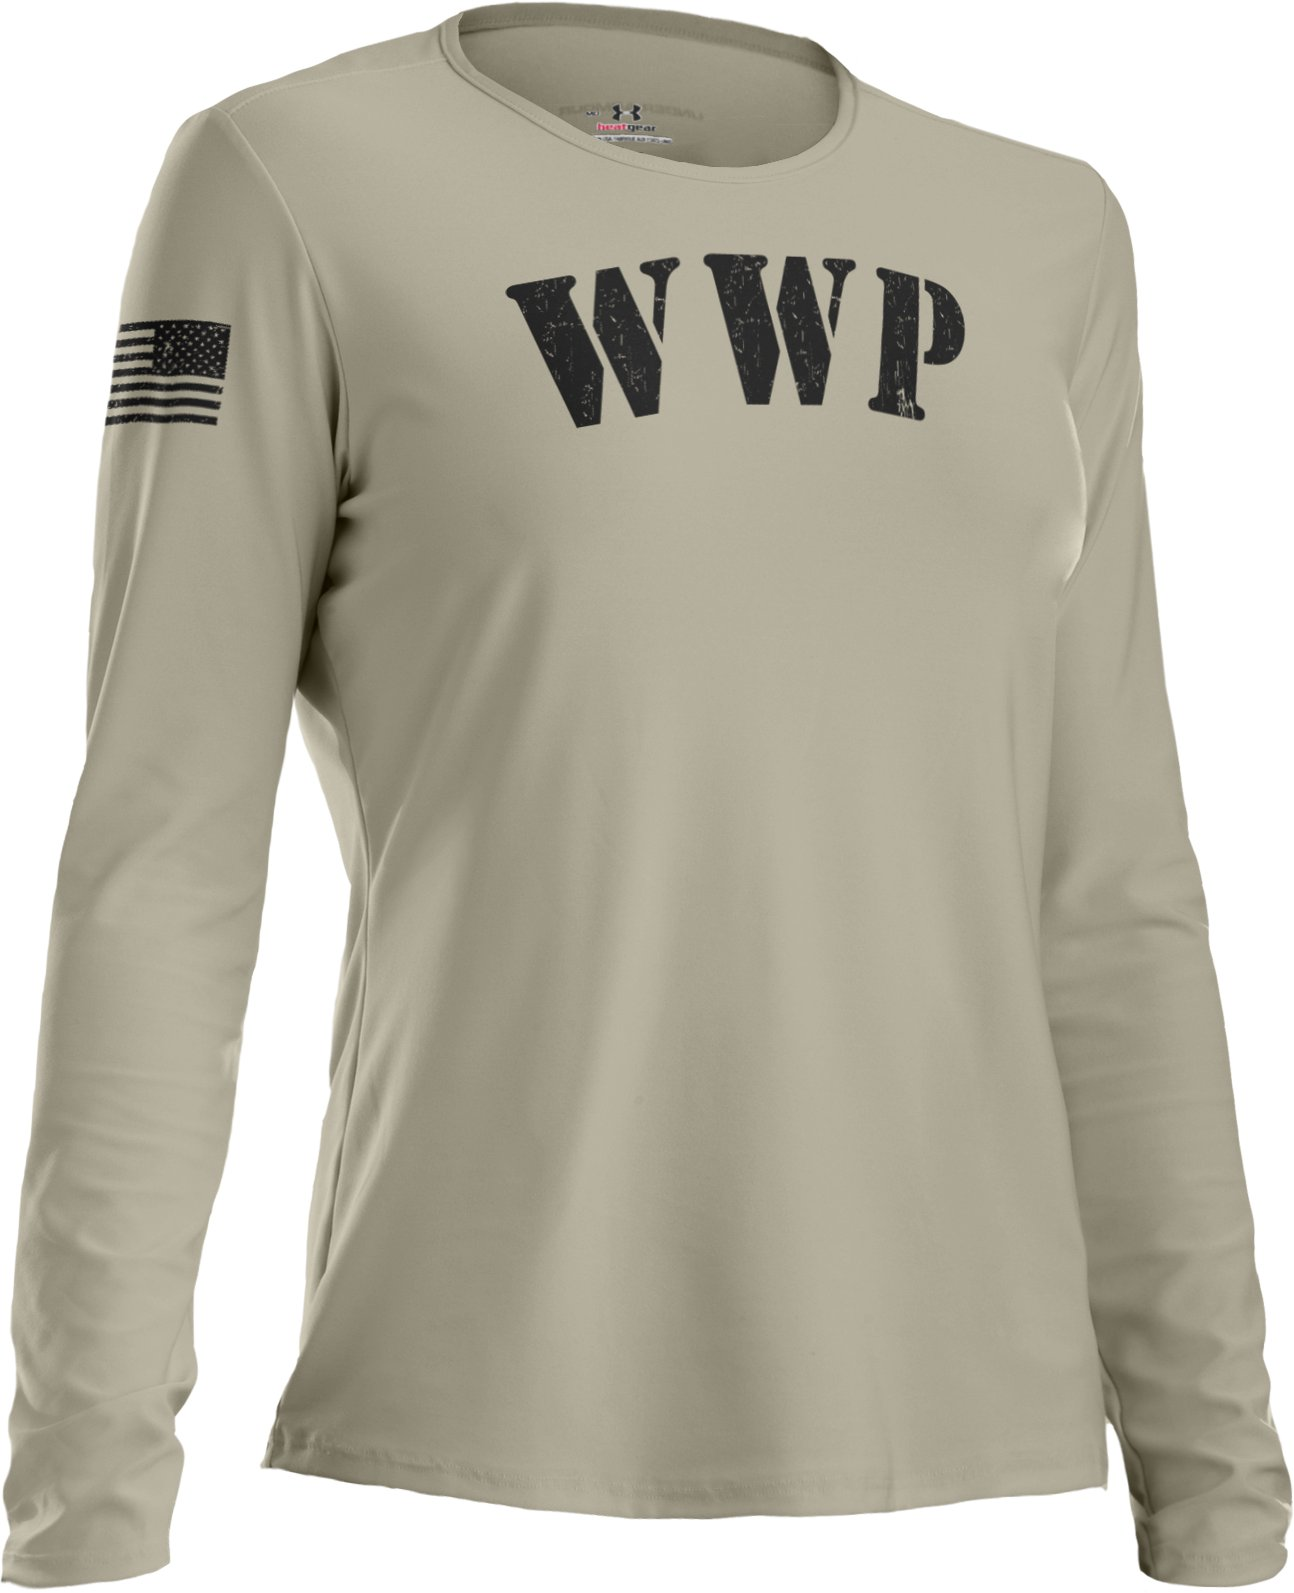 Men's WWP Long Sleeve T-Shirt, Desert Sand